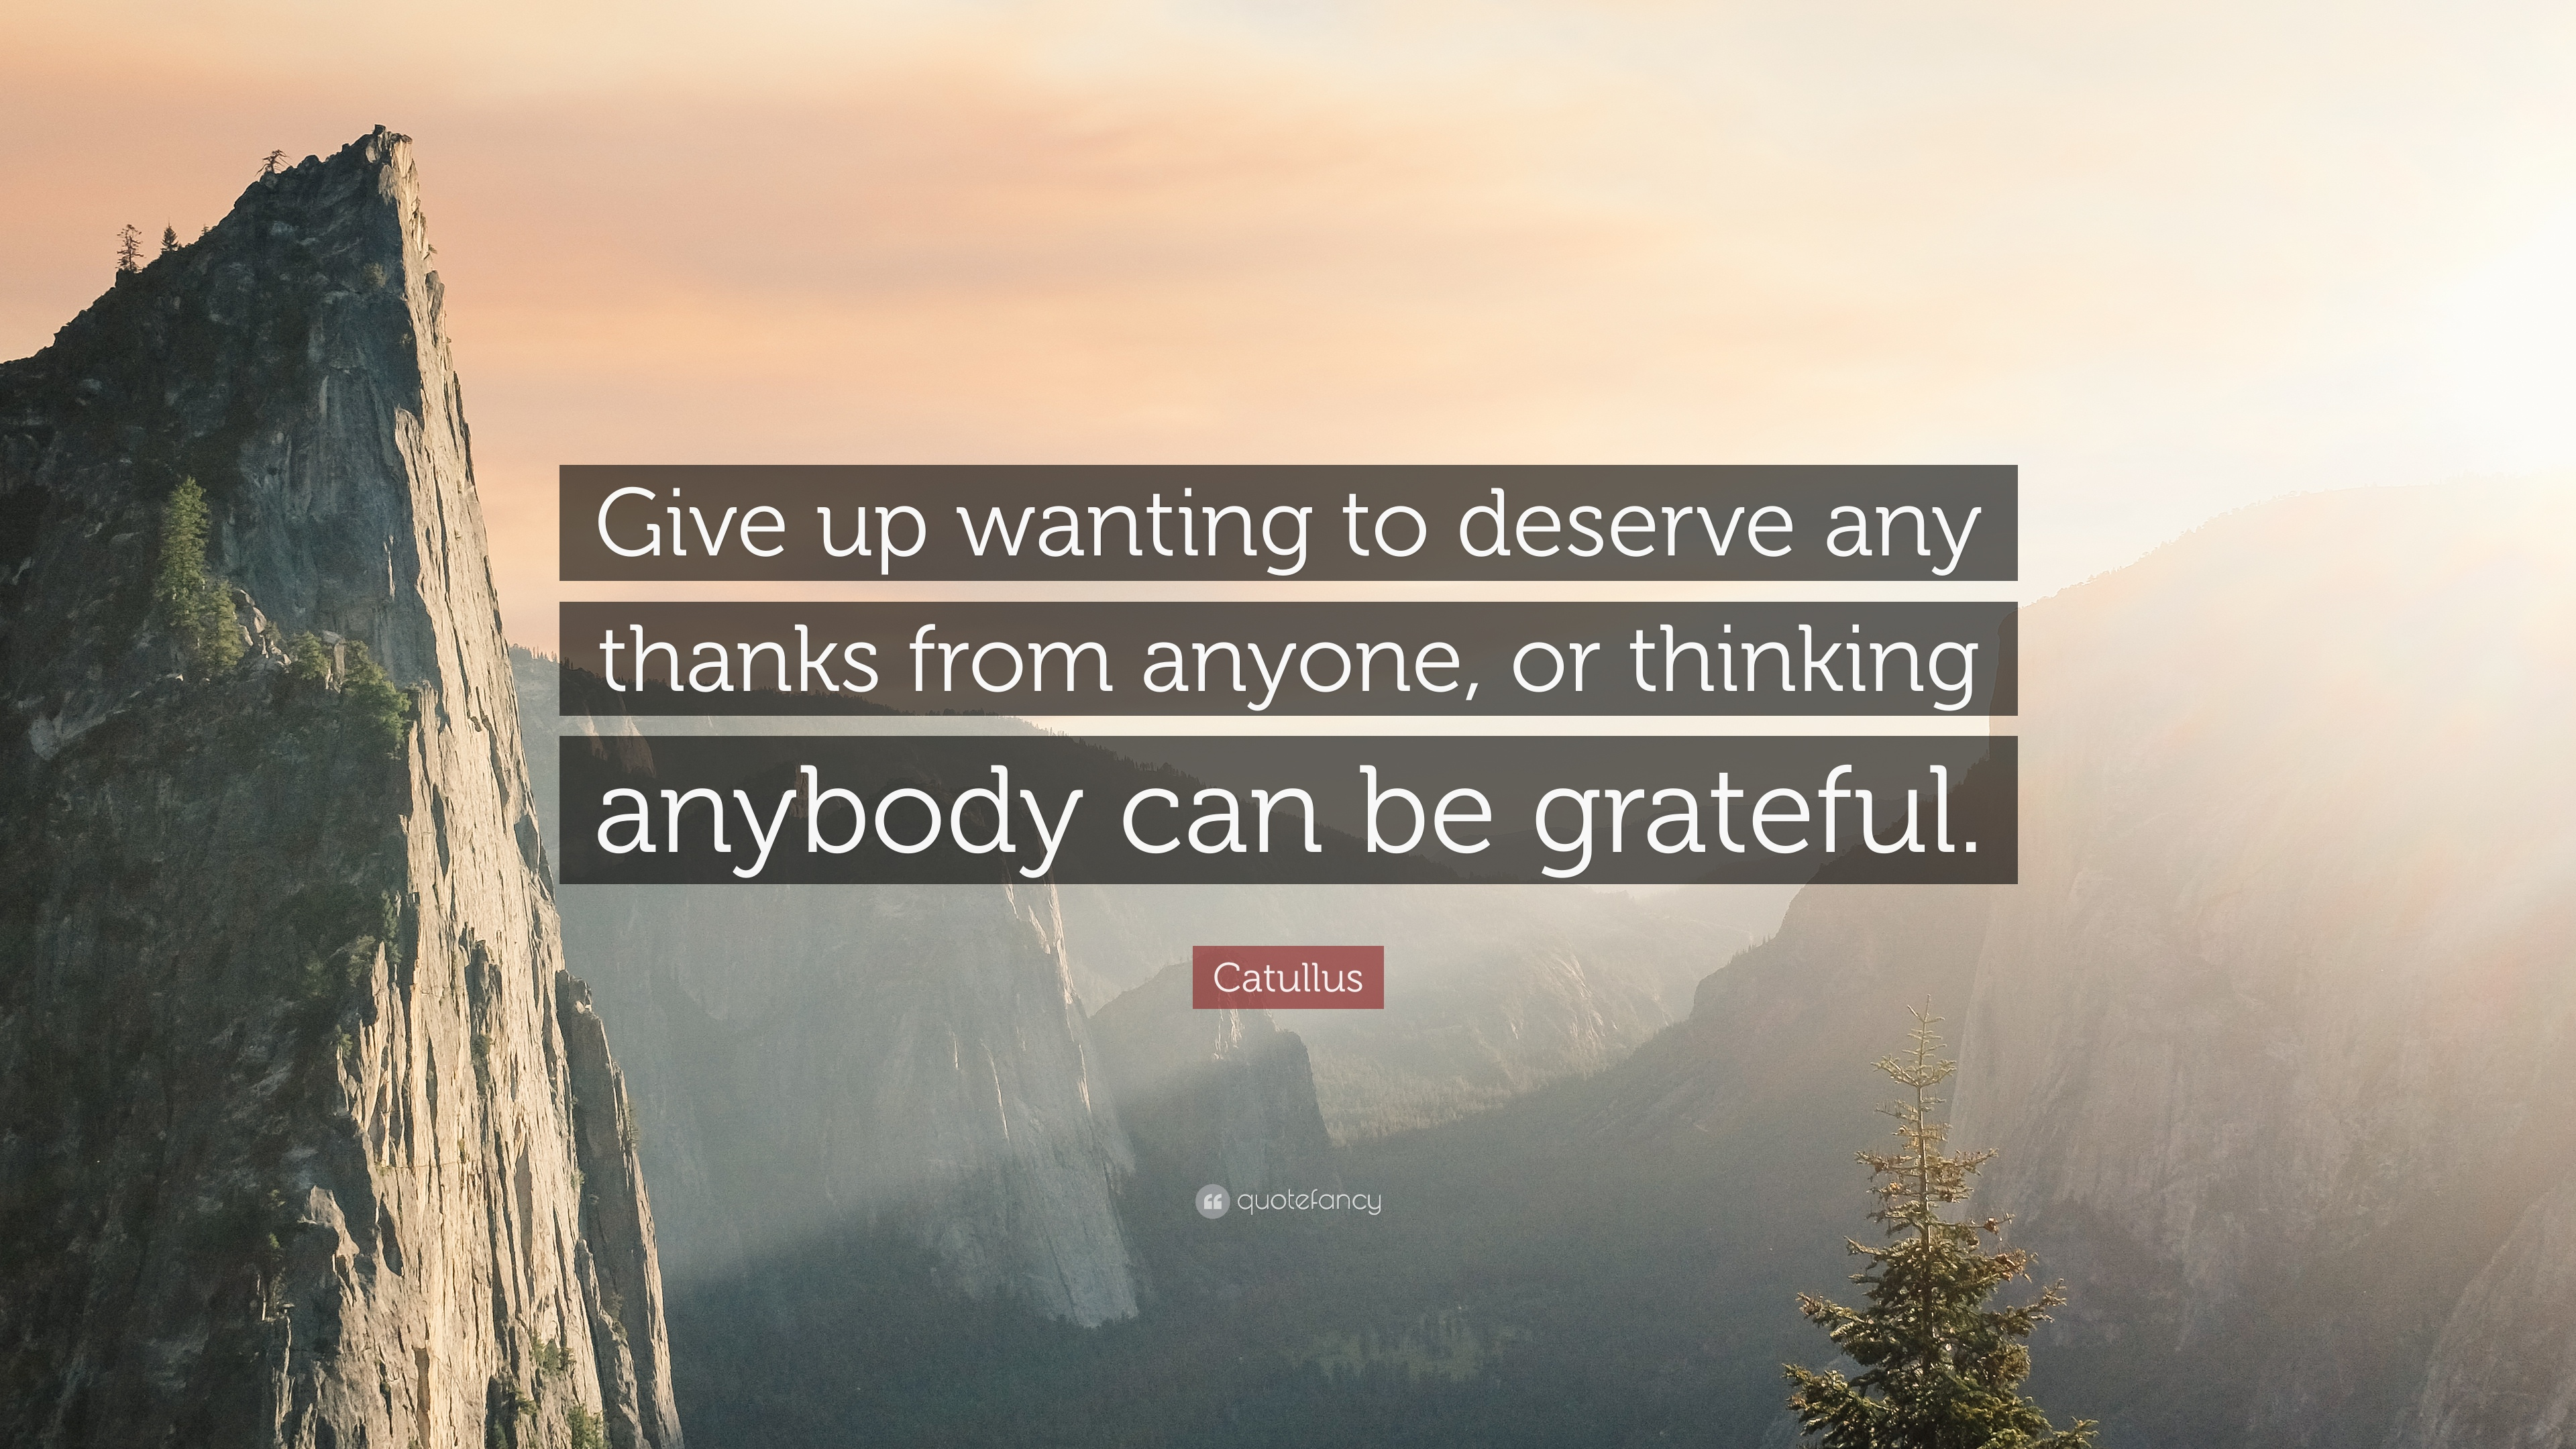 Catullus Quote Give Up Wanting To Deserve Any Thanks From Anyone